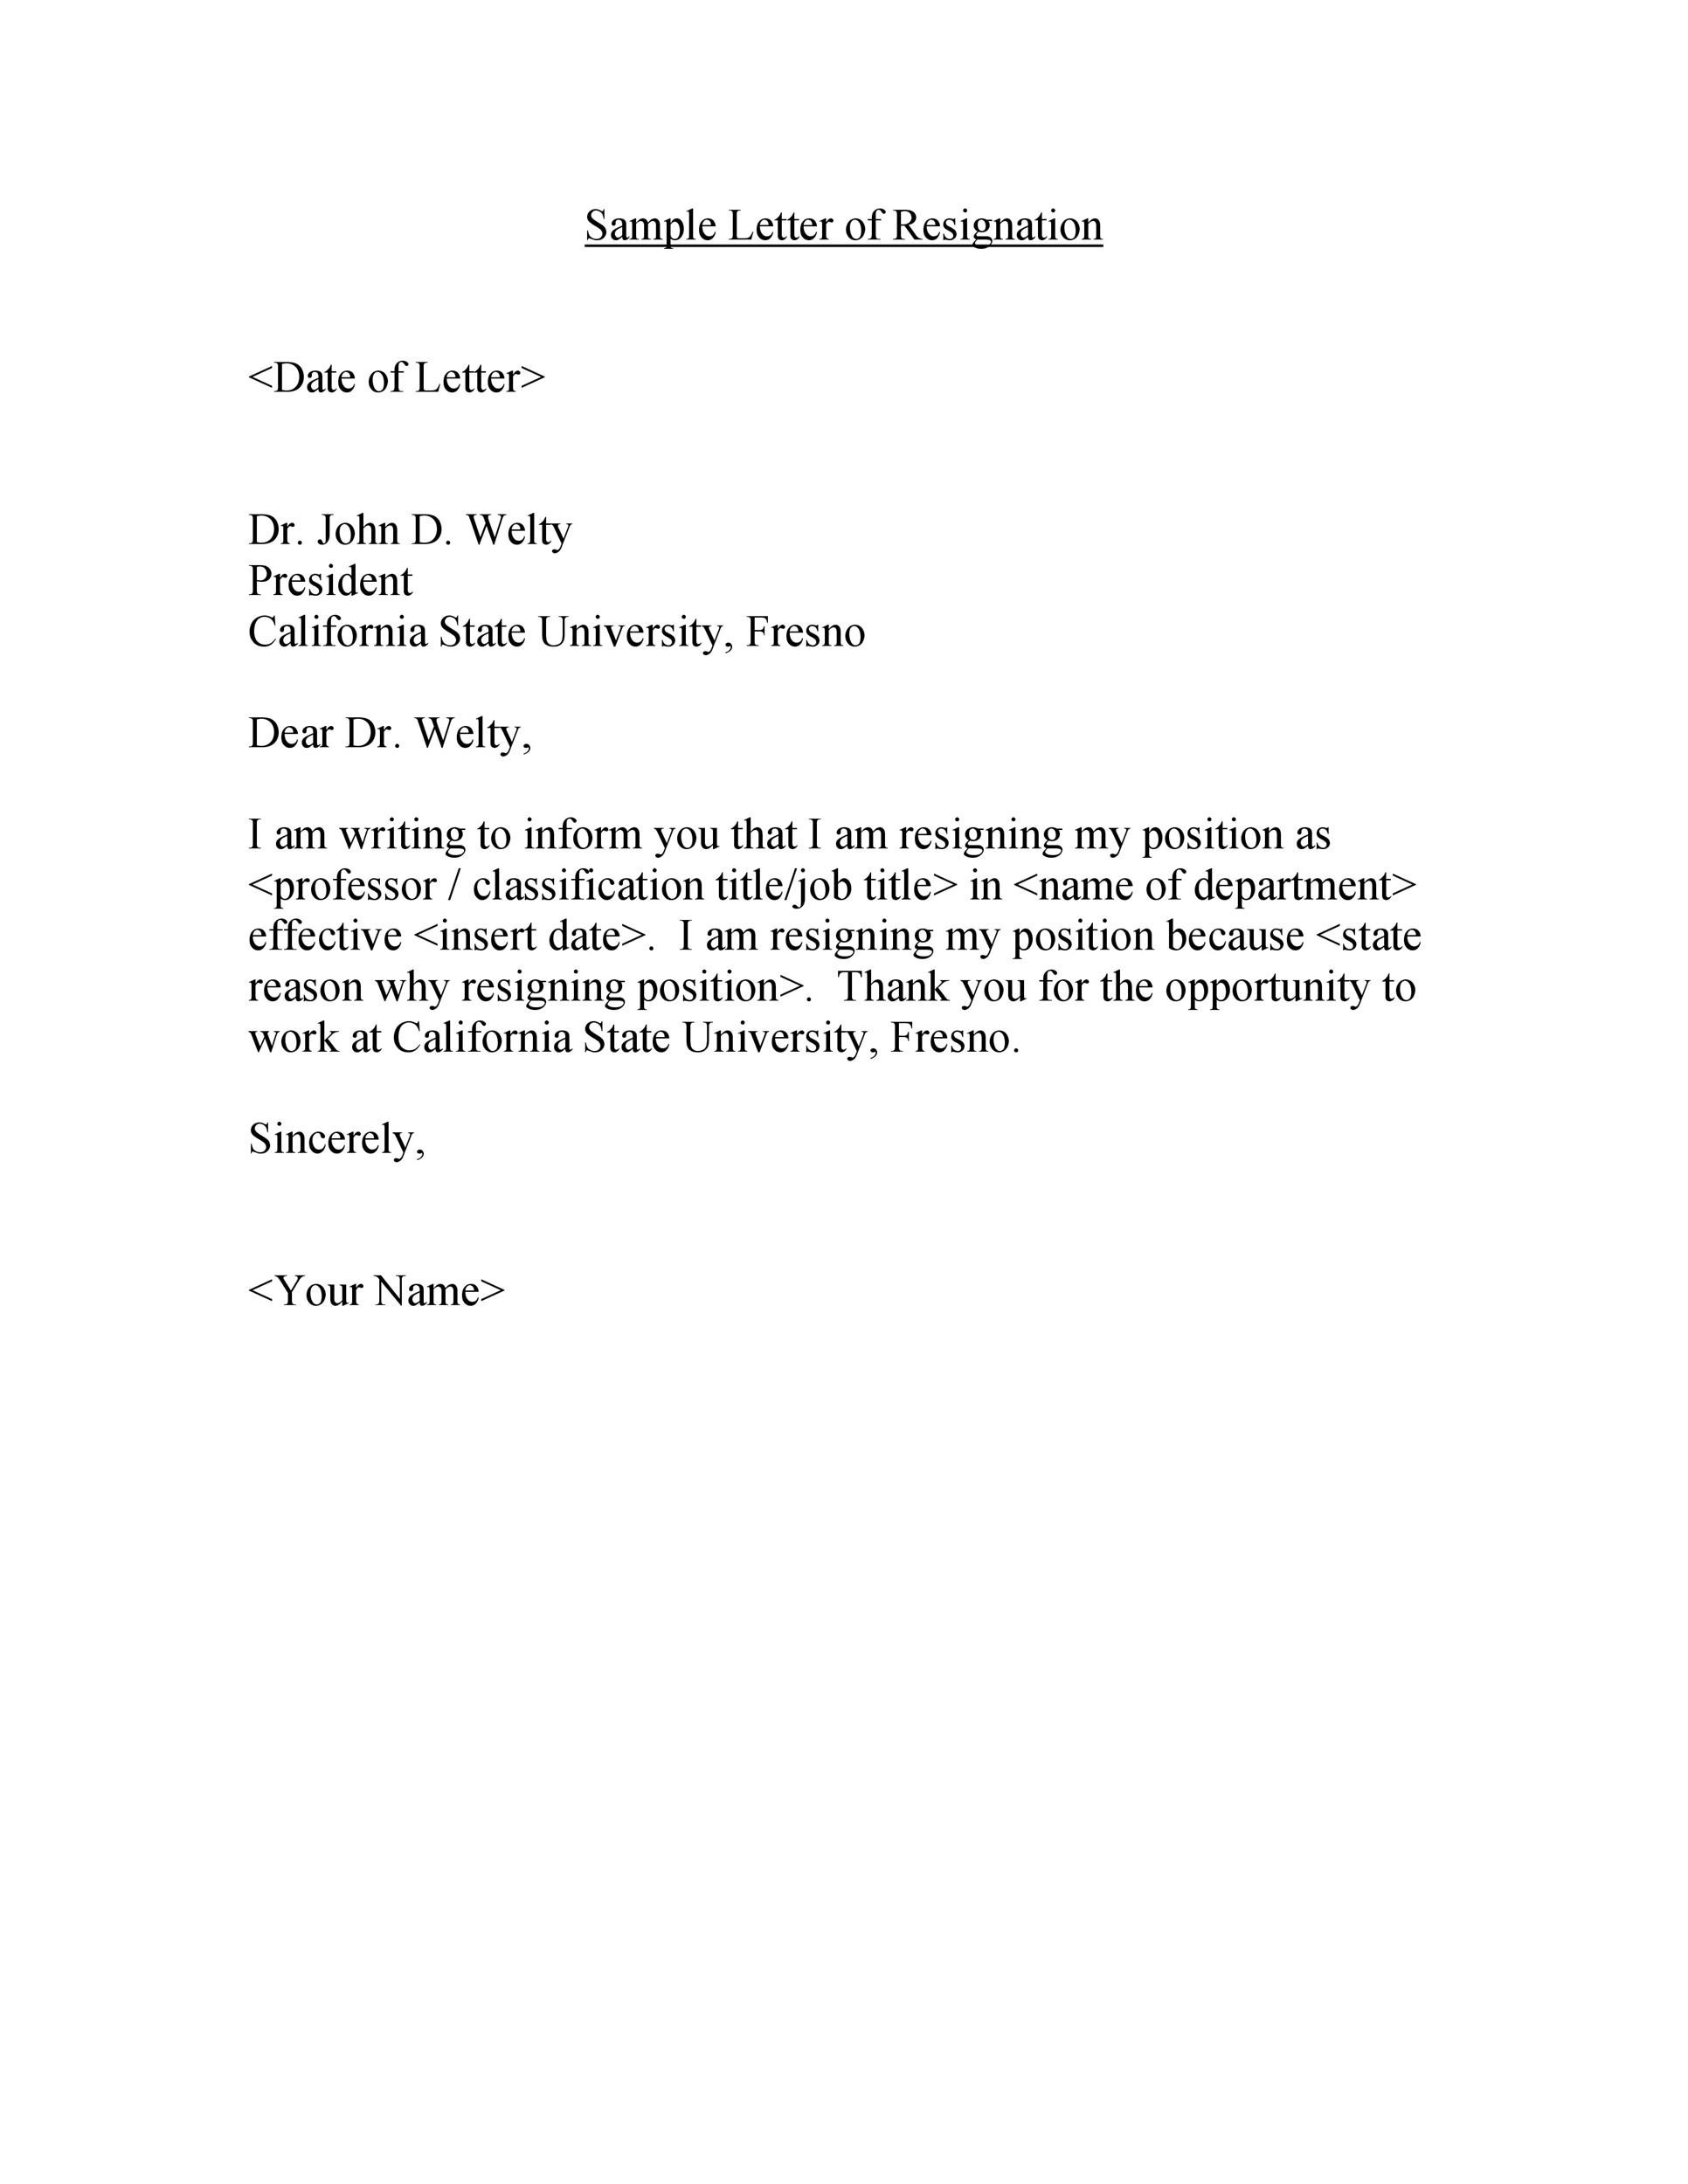 Resign From A Job Letter from templatelab.com